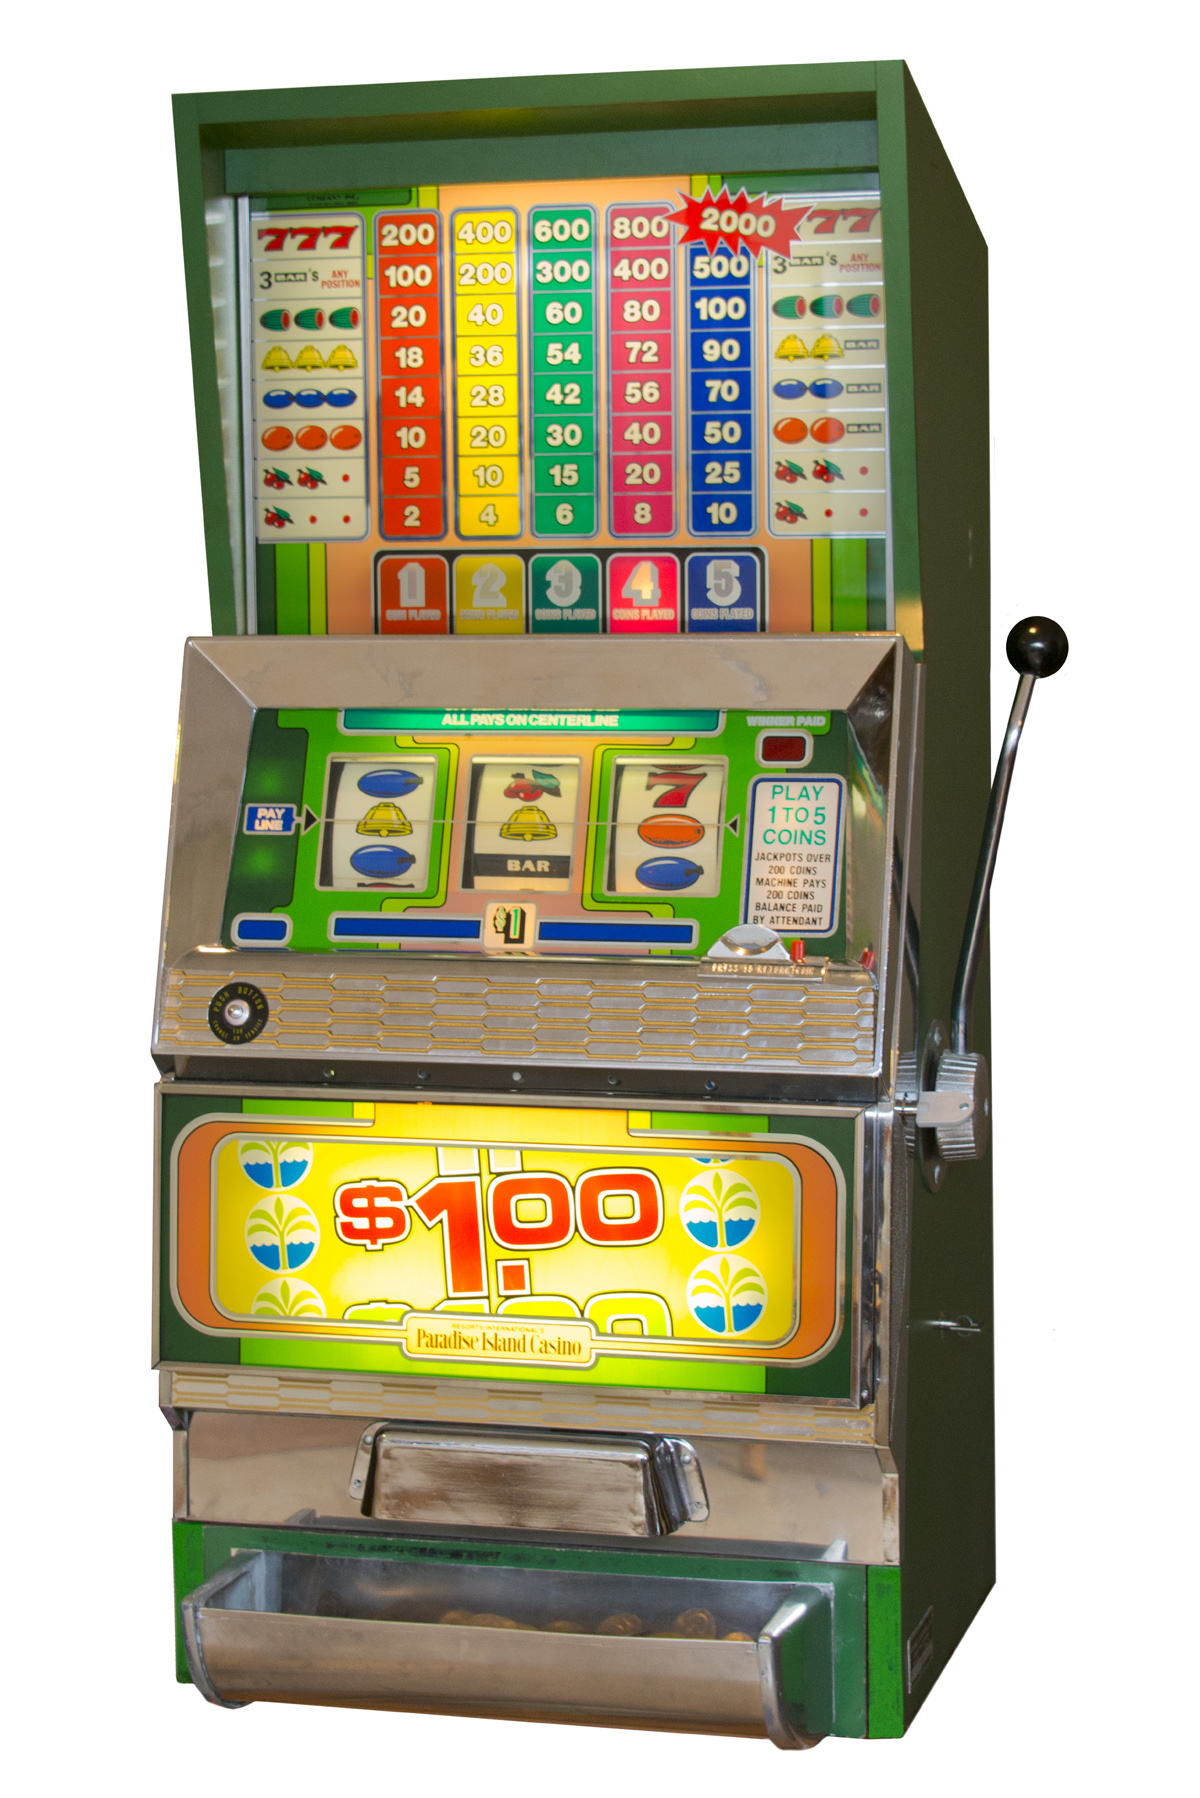 reel em in slot machine app